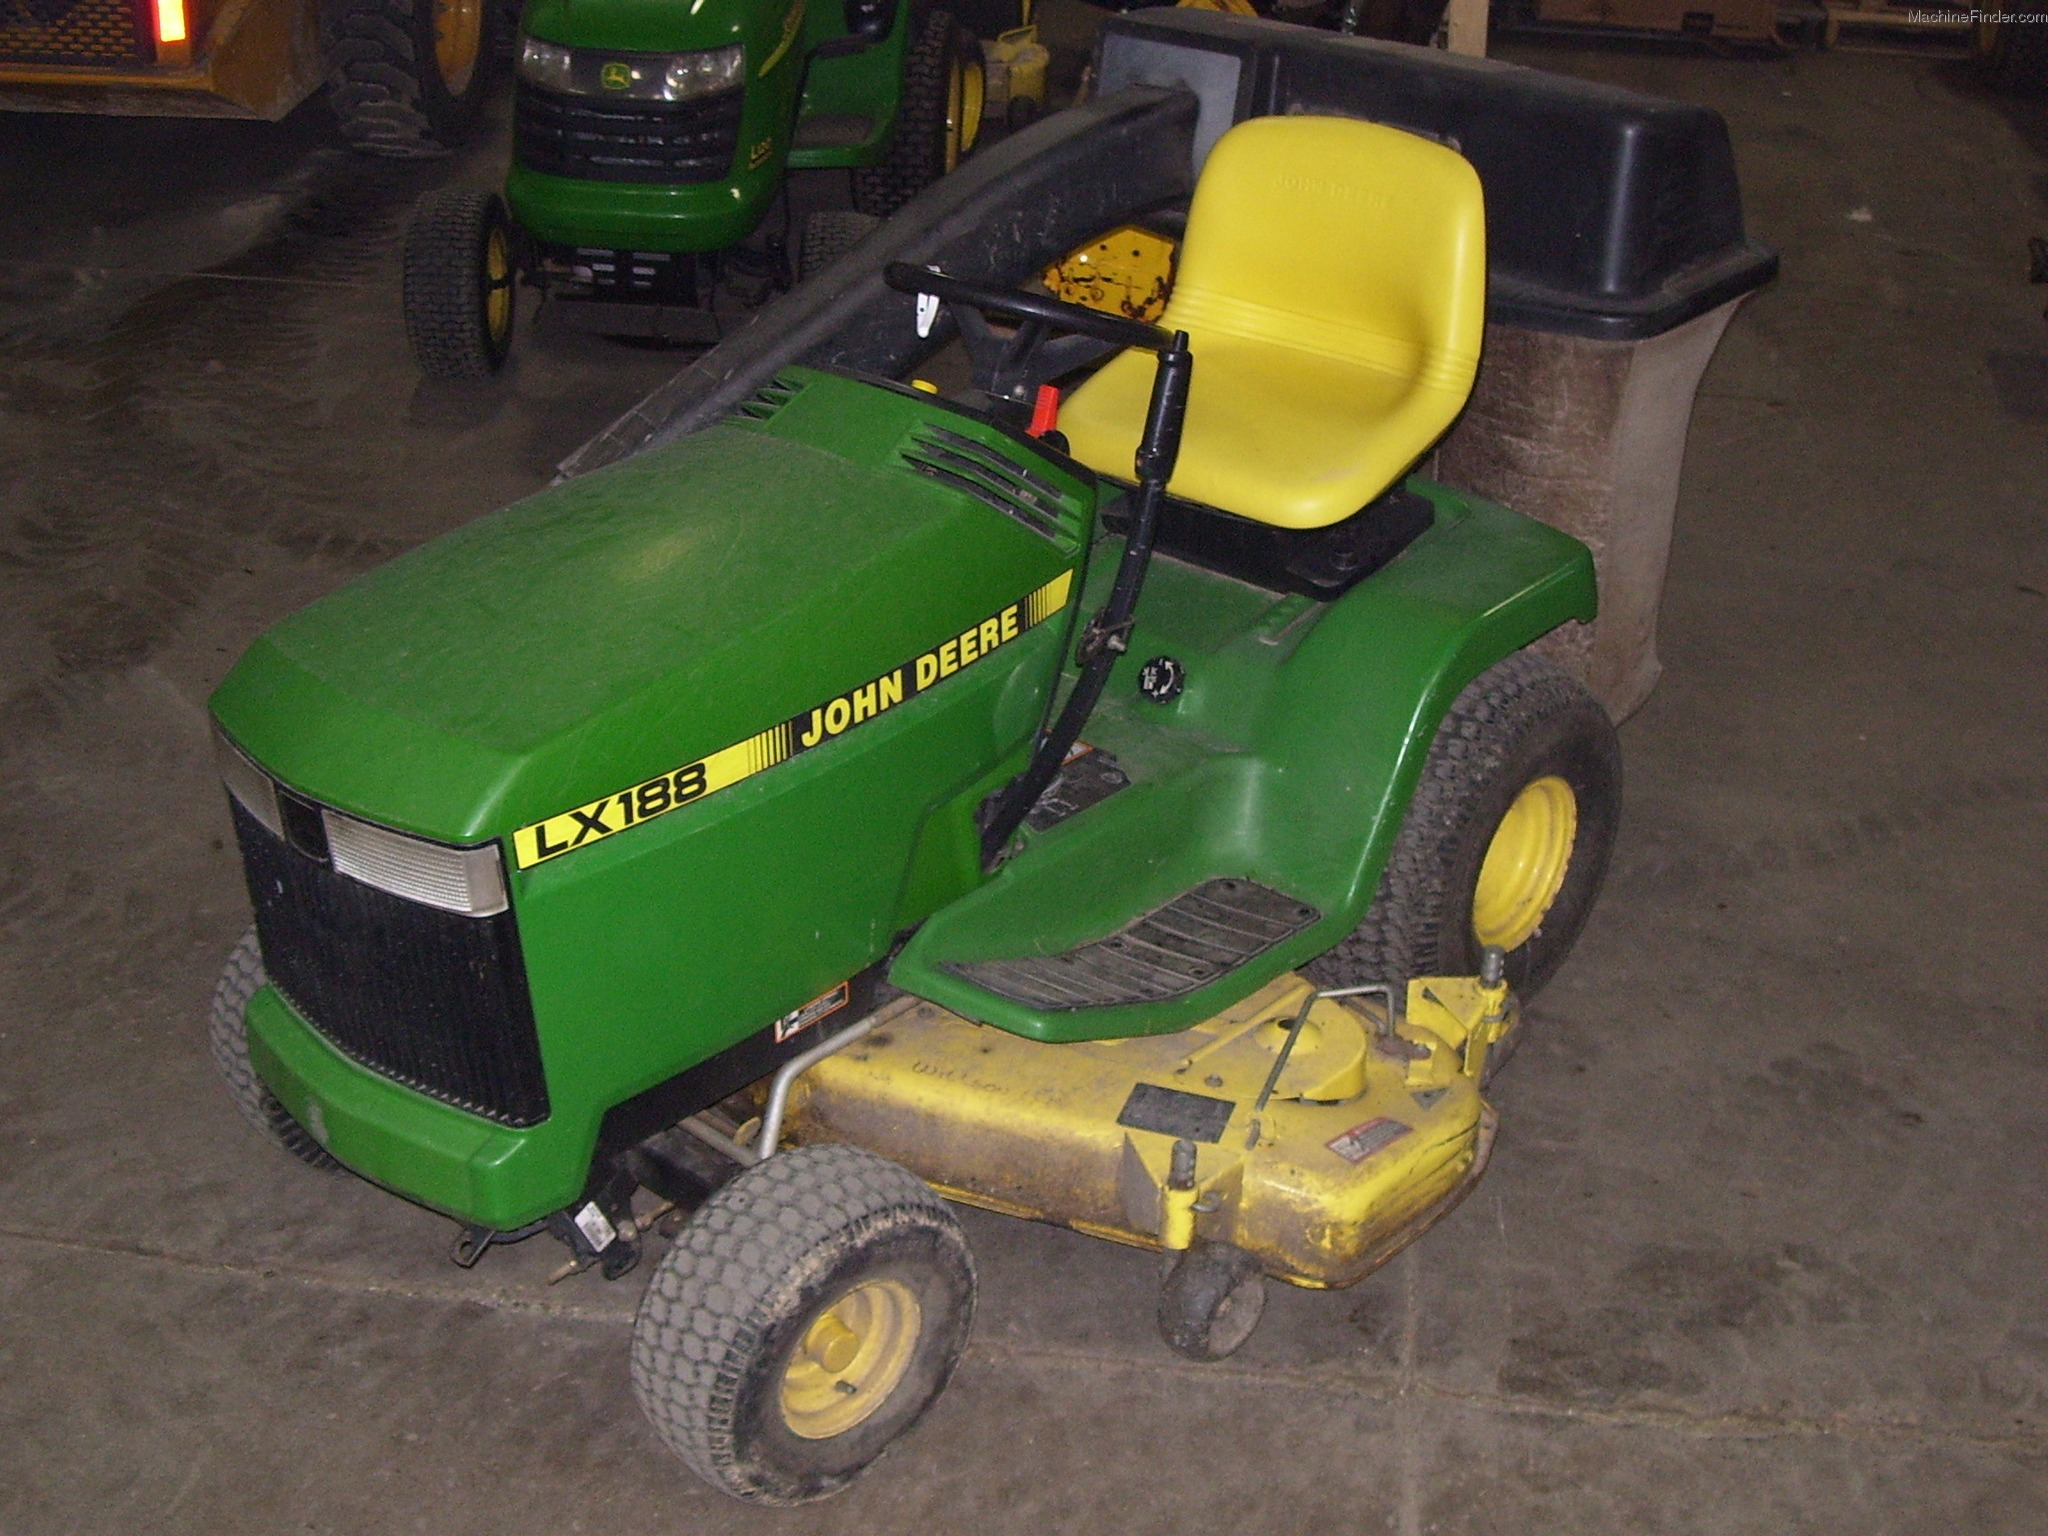 John Deere Lx188 Mower Deck Parts : Status